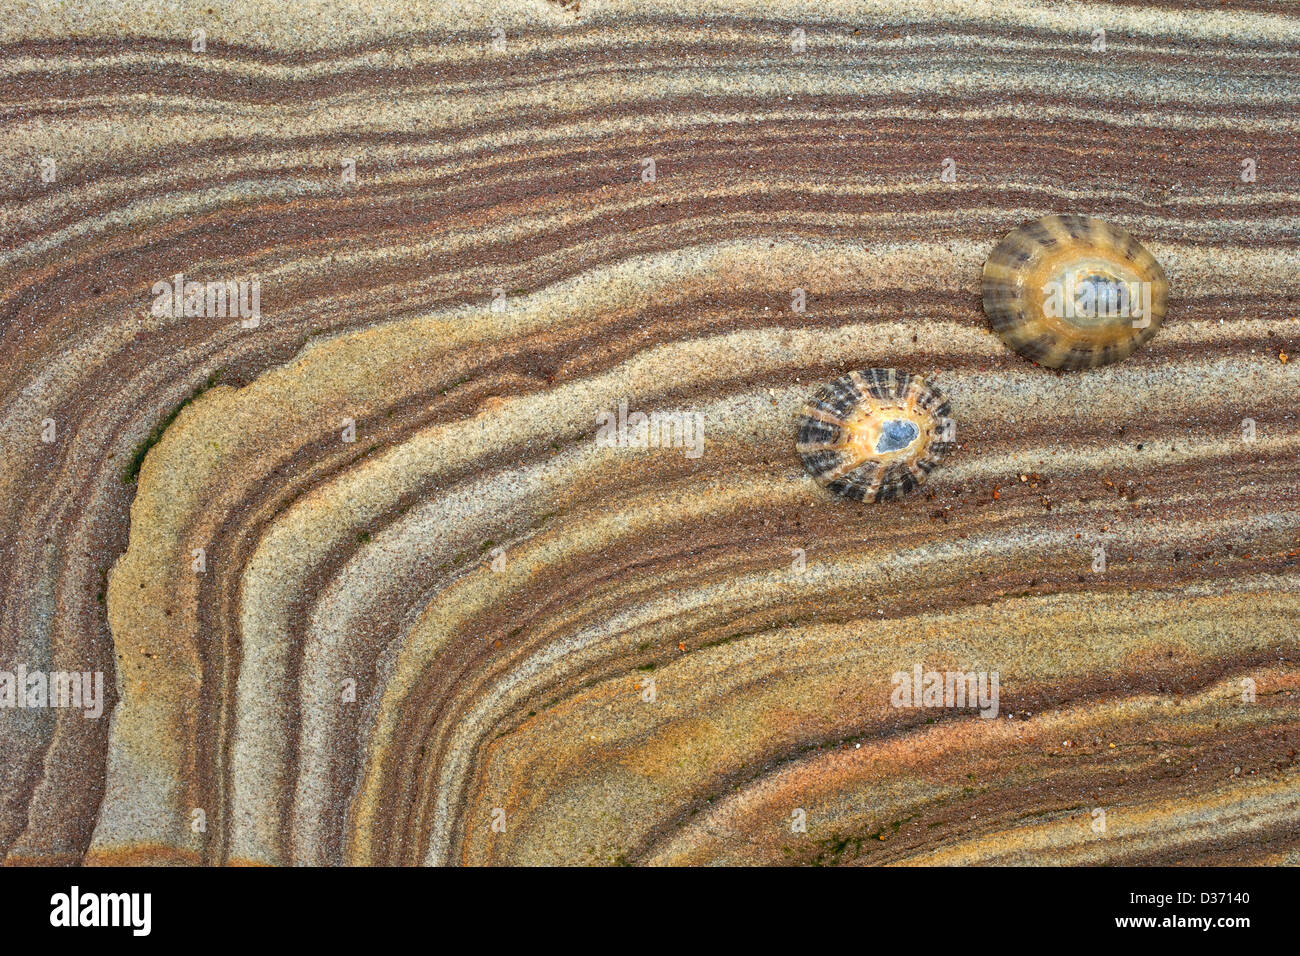 Limpet shells on sandstone rock, Northumberland, Northeast England, UK, GB - Stock Image